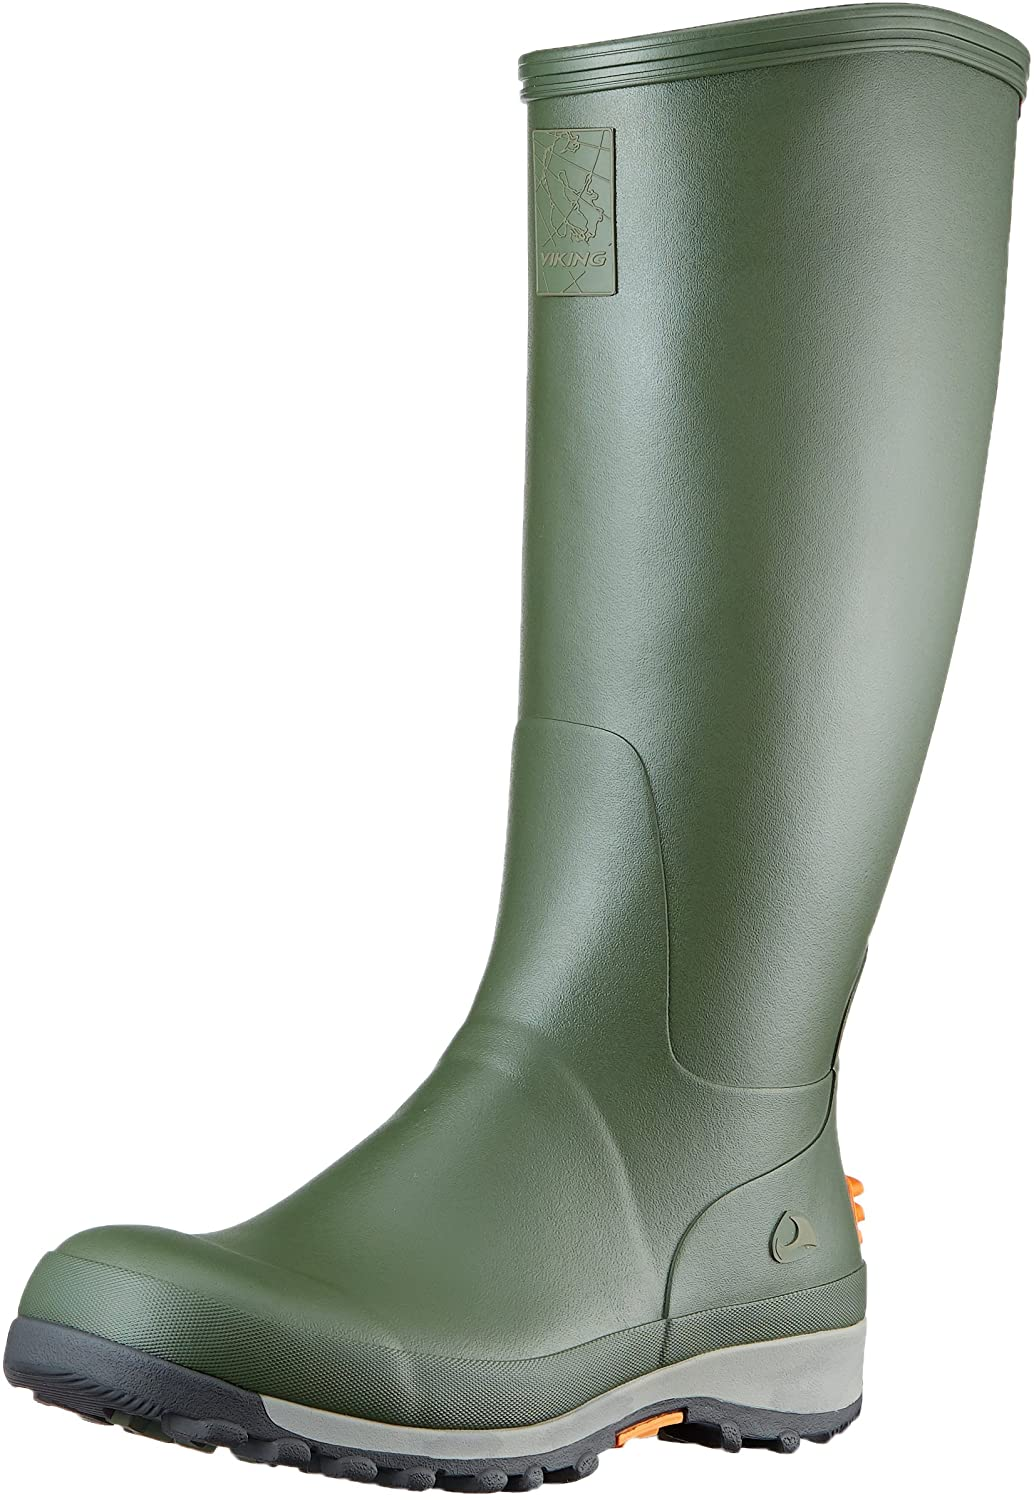 Viking Men's Work Wellington Boots